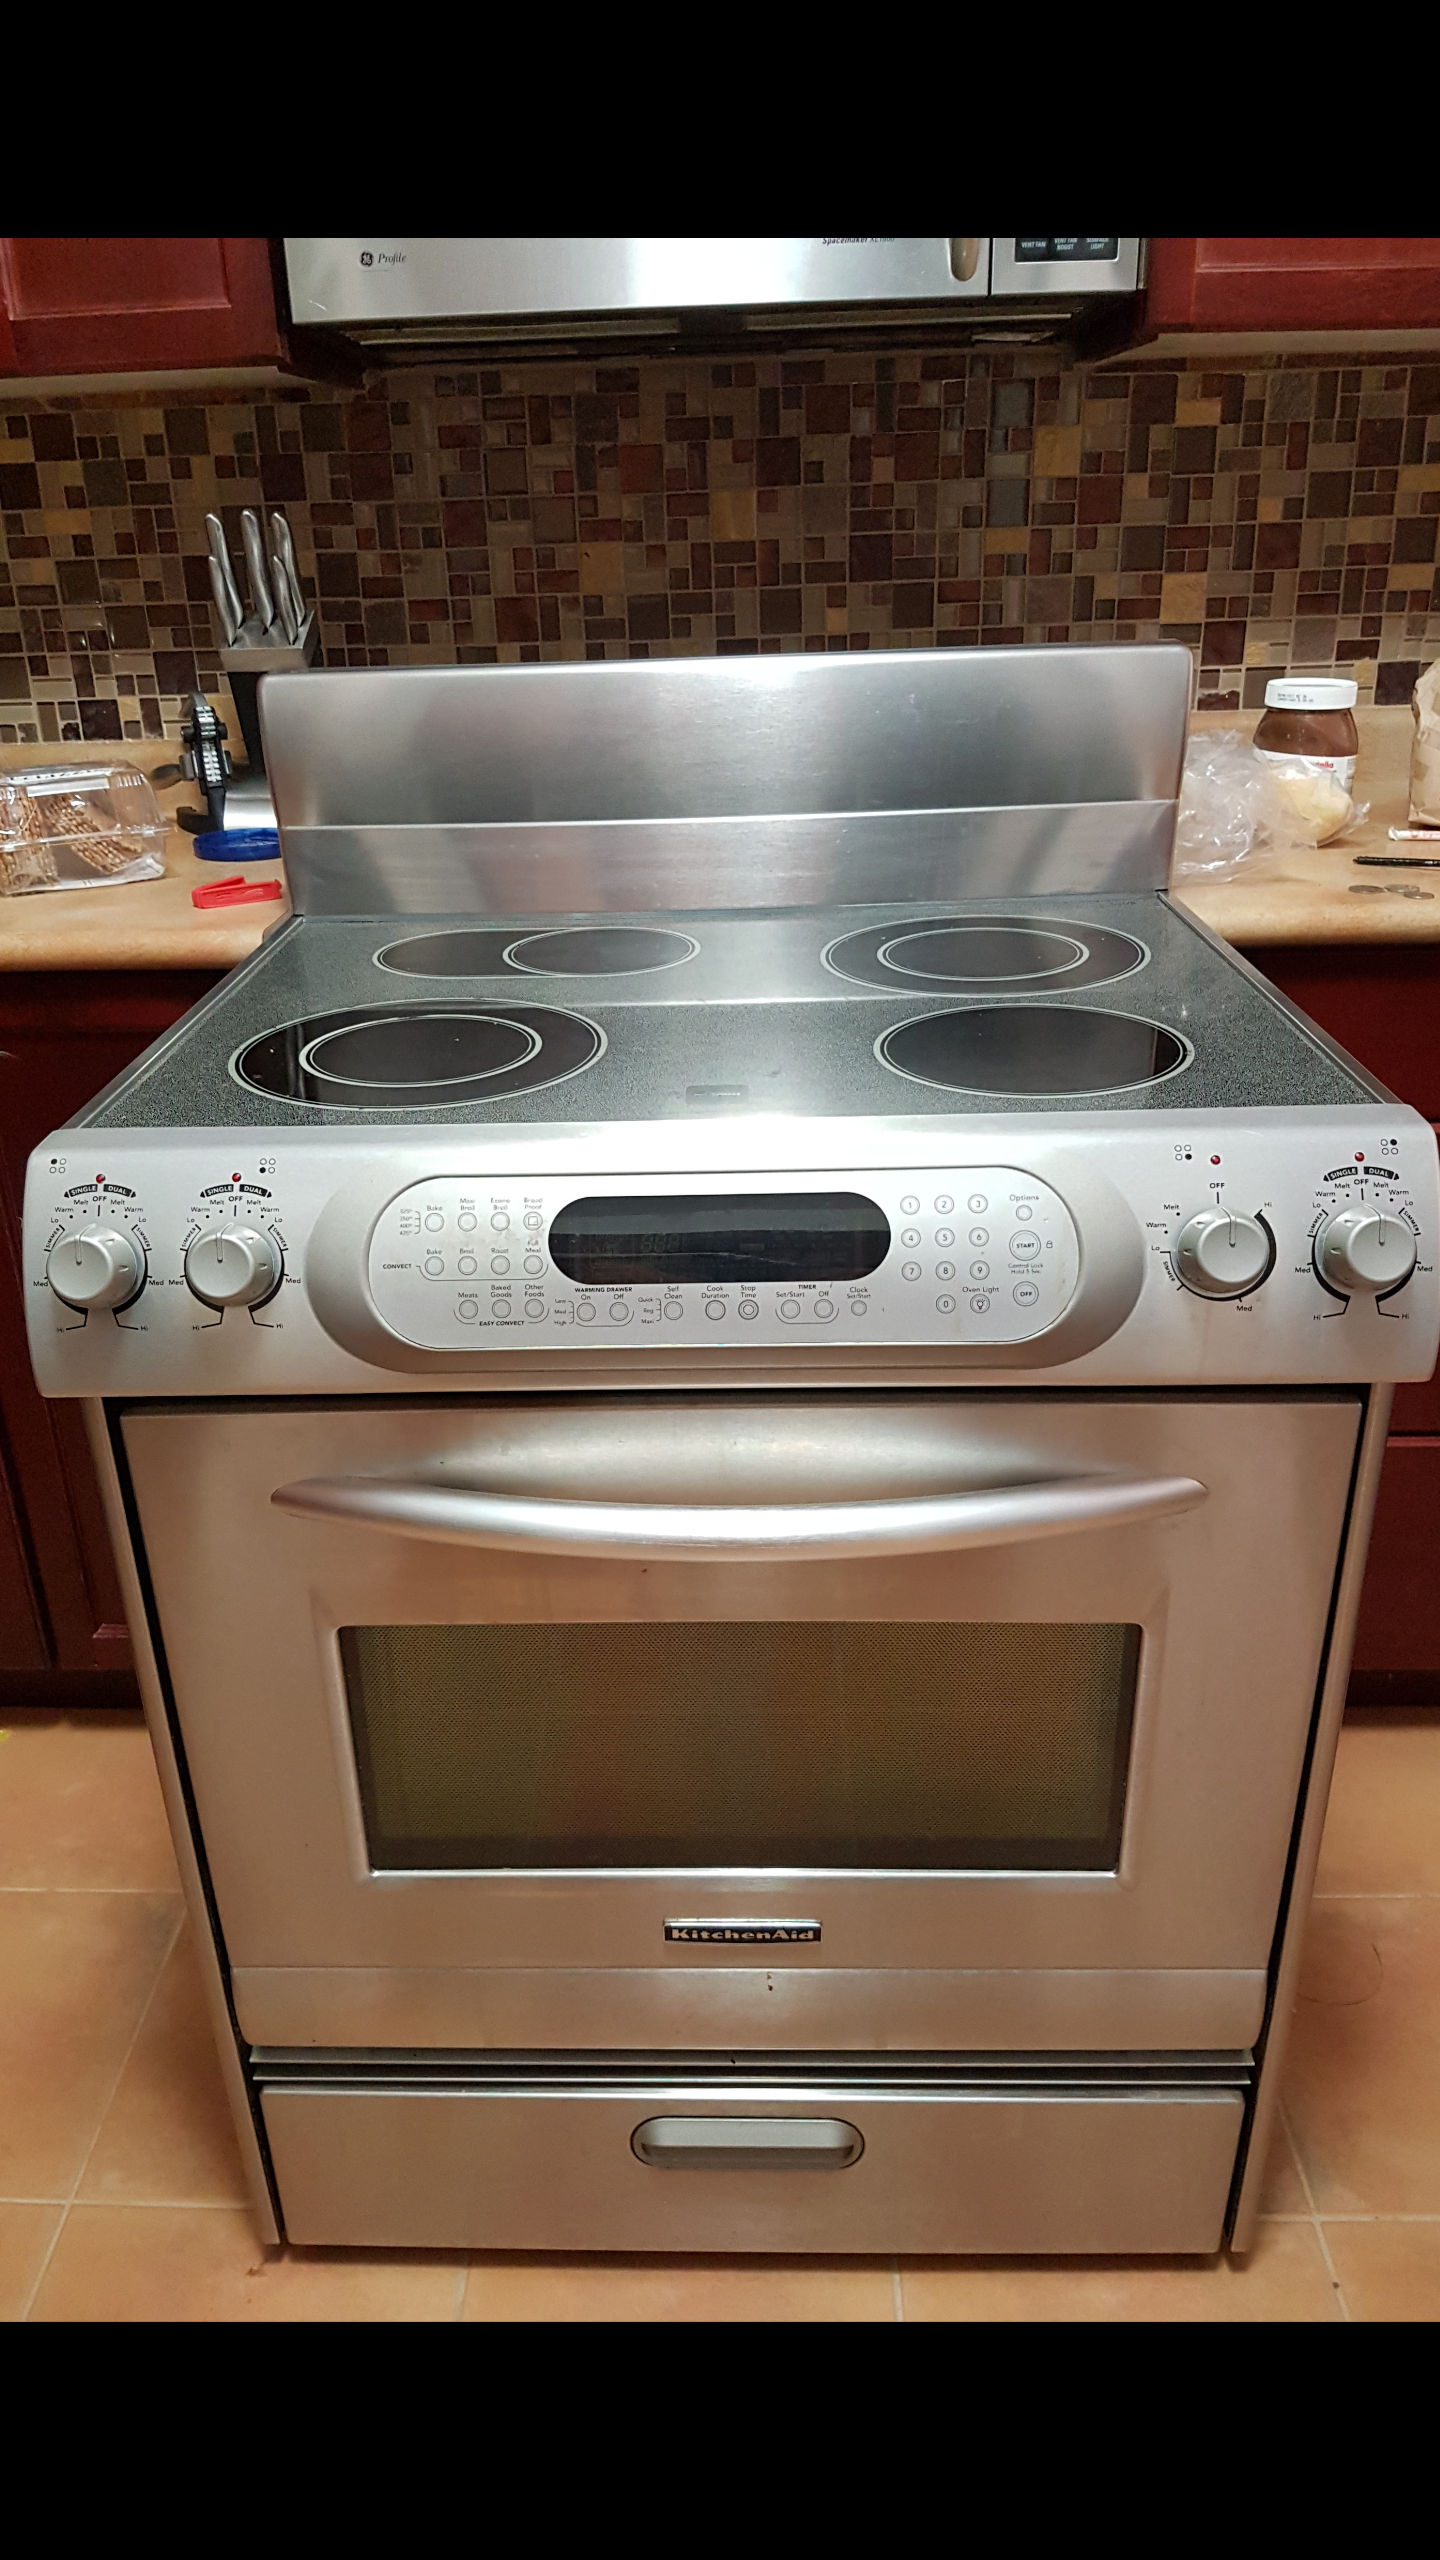 Kitchenaid Gas Range Troubleshooting